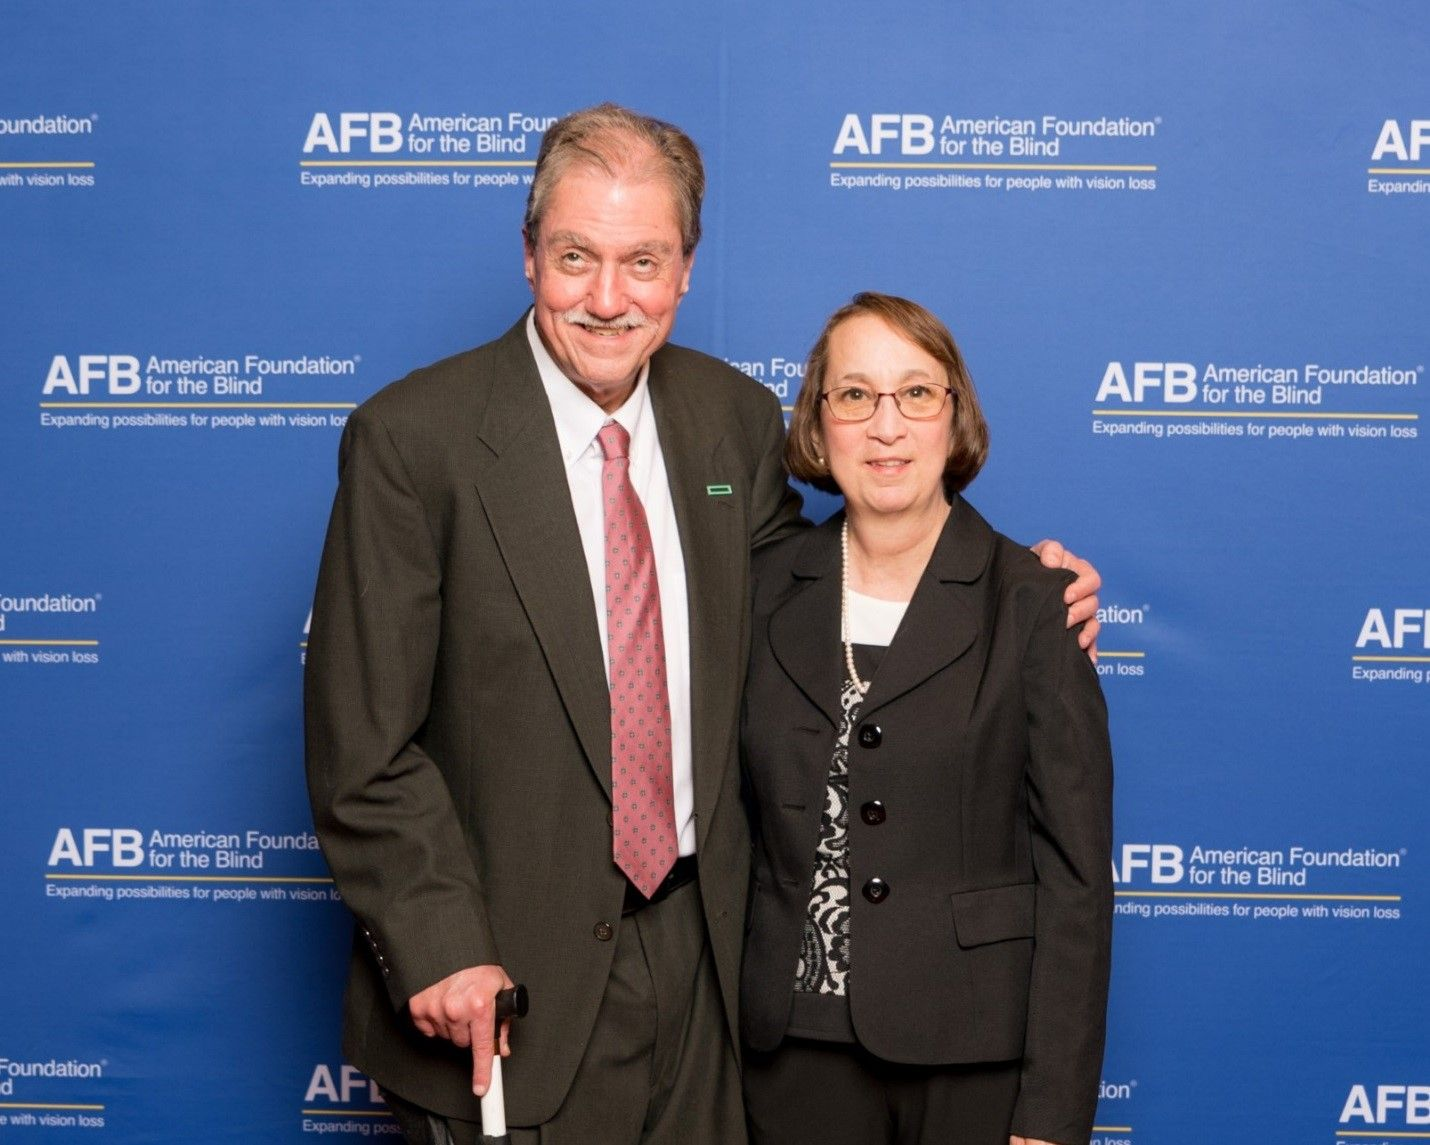 Group Photo:  Bill Tipton, from the HPE  Product Accessibility Program Office with his wife Kathy.  Bill is wearing a  charcoal grey suit with white shirt and mauve tie and Kathy is wearing a black pantsuit with a black and white lace top.